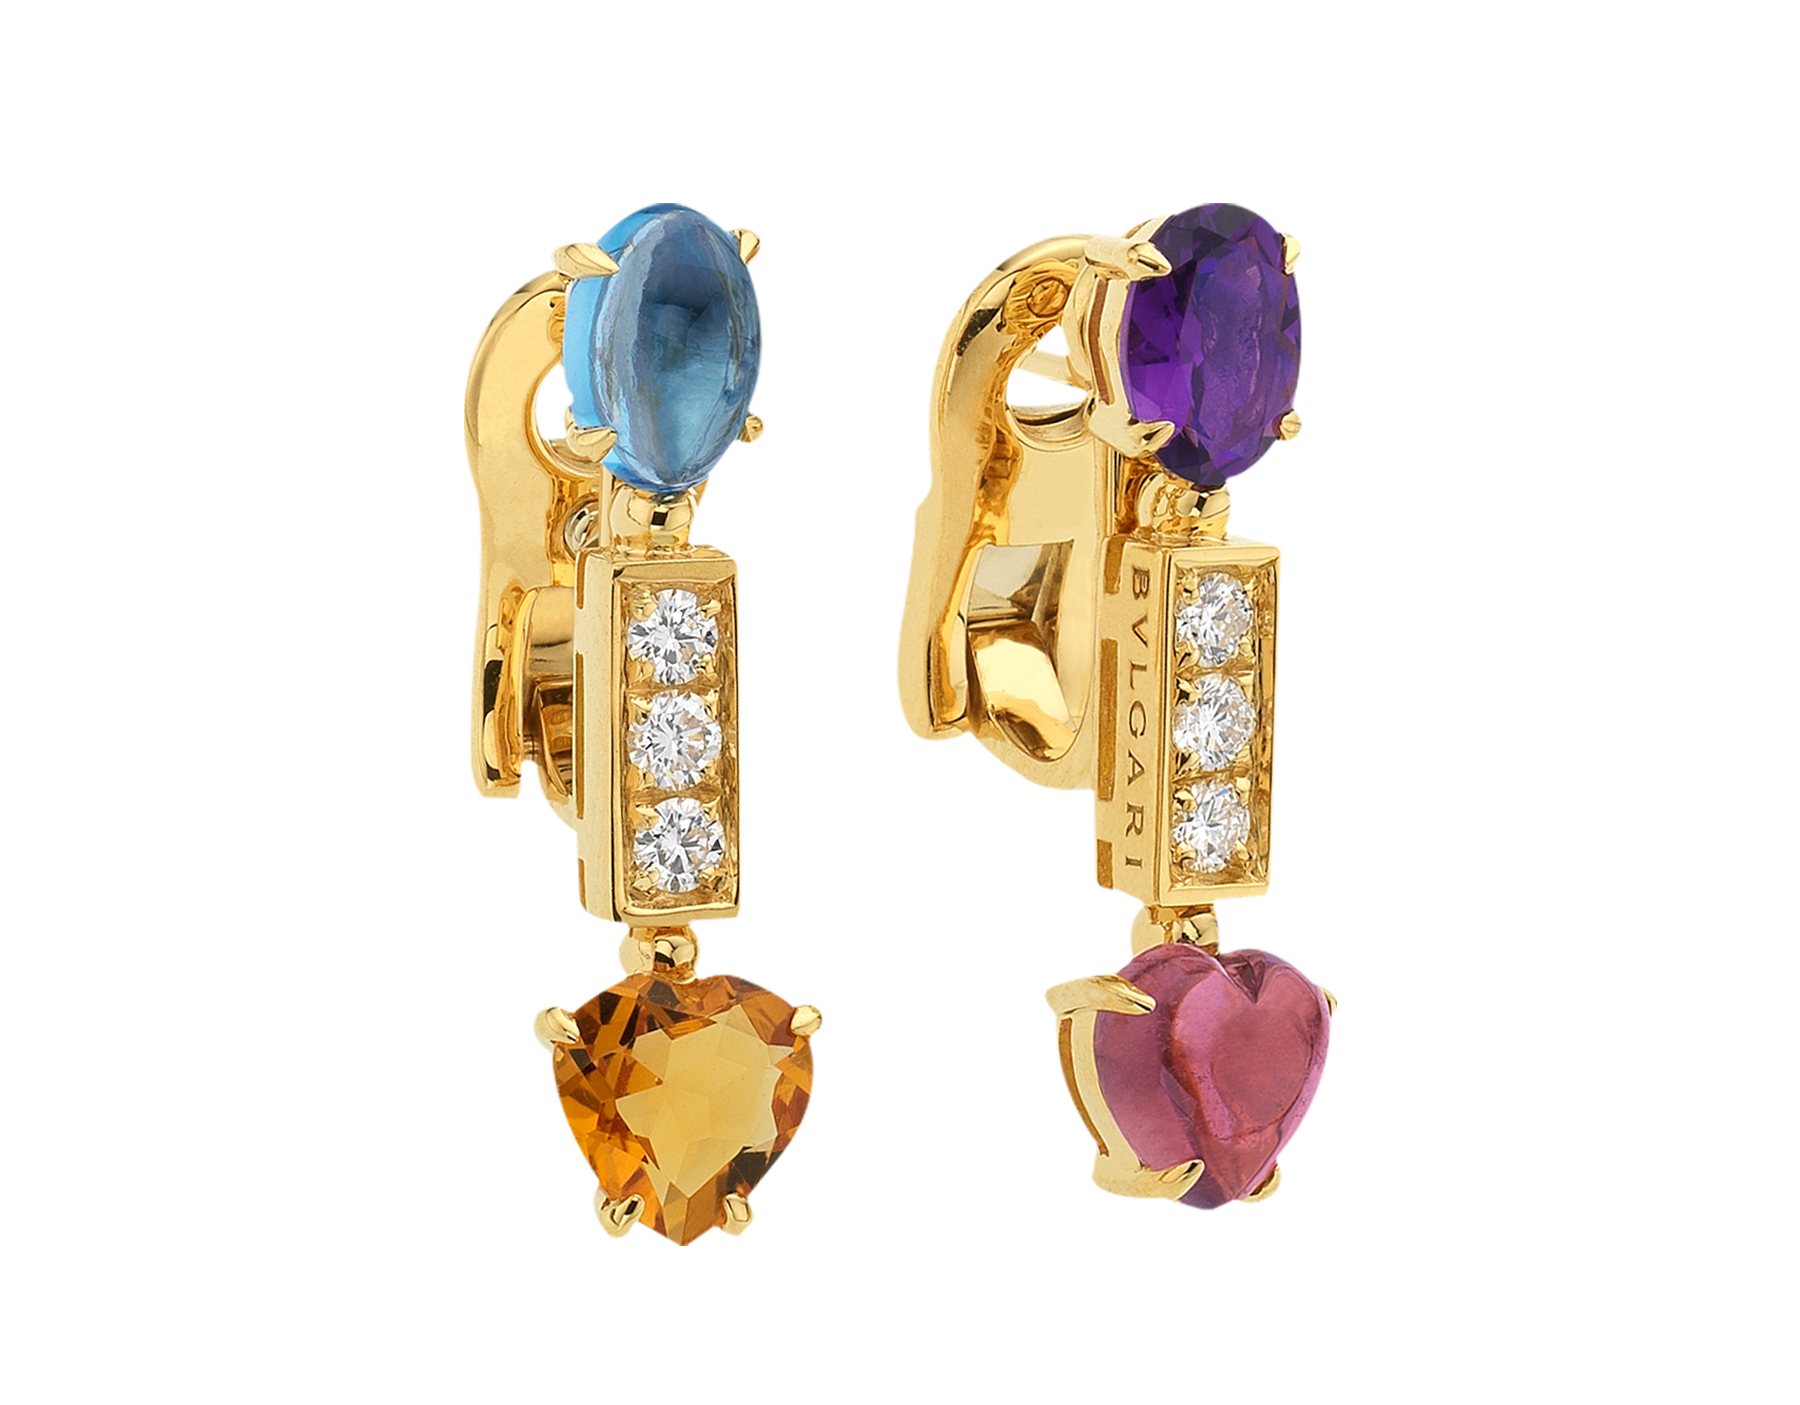 Allegra short 18 kt yellow gold pendant earrings set with pink tourmaline, amethyst, citrine quartz, blue topaz and pavé diamonds 334677 image 2